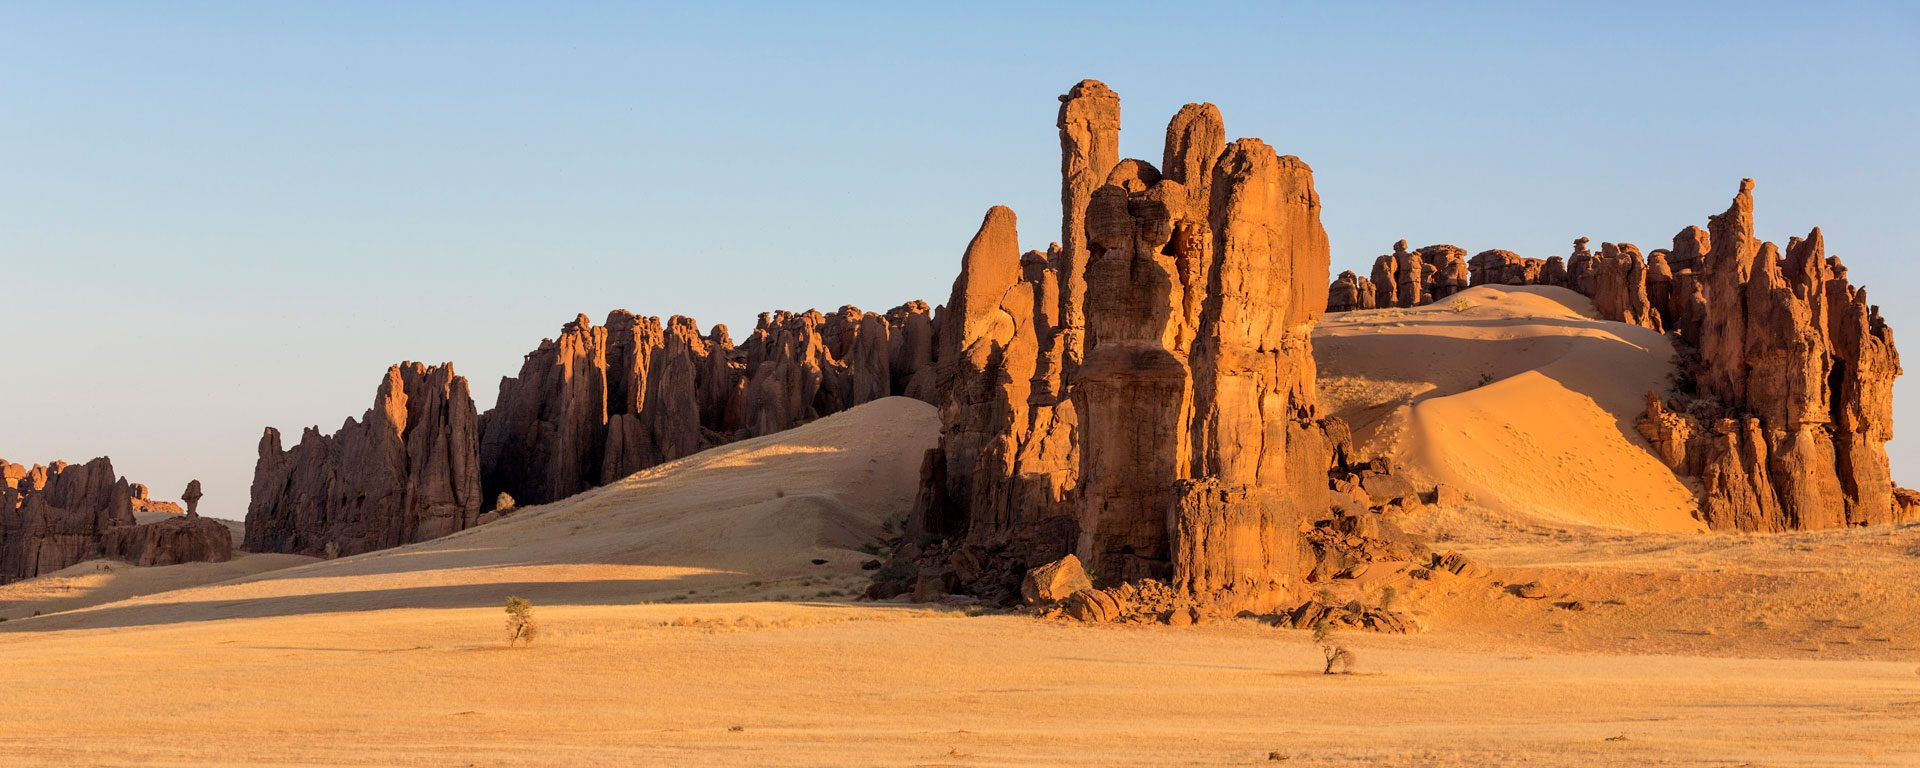 A ridge of red sandstone columns in the Ennedi Desert, Chad